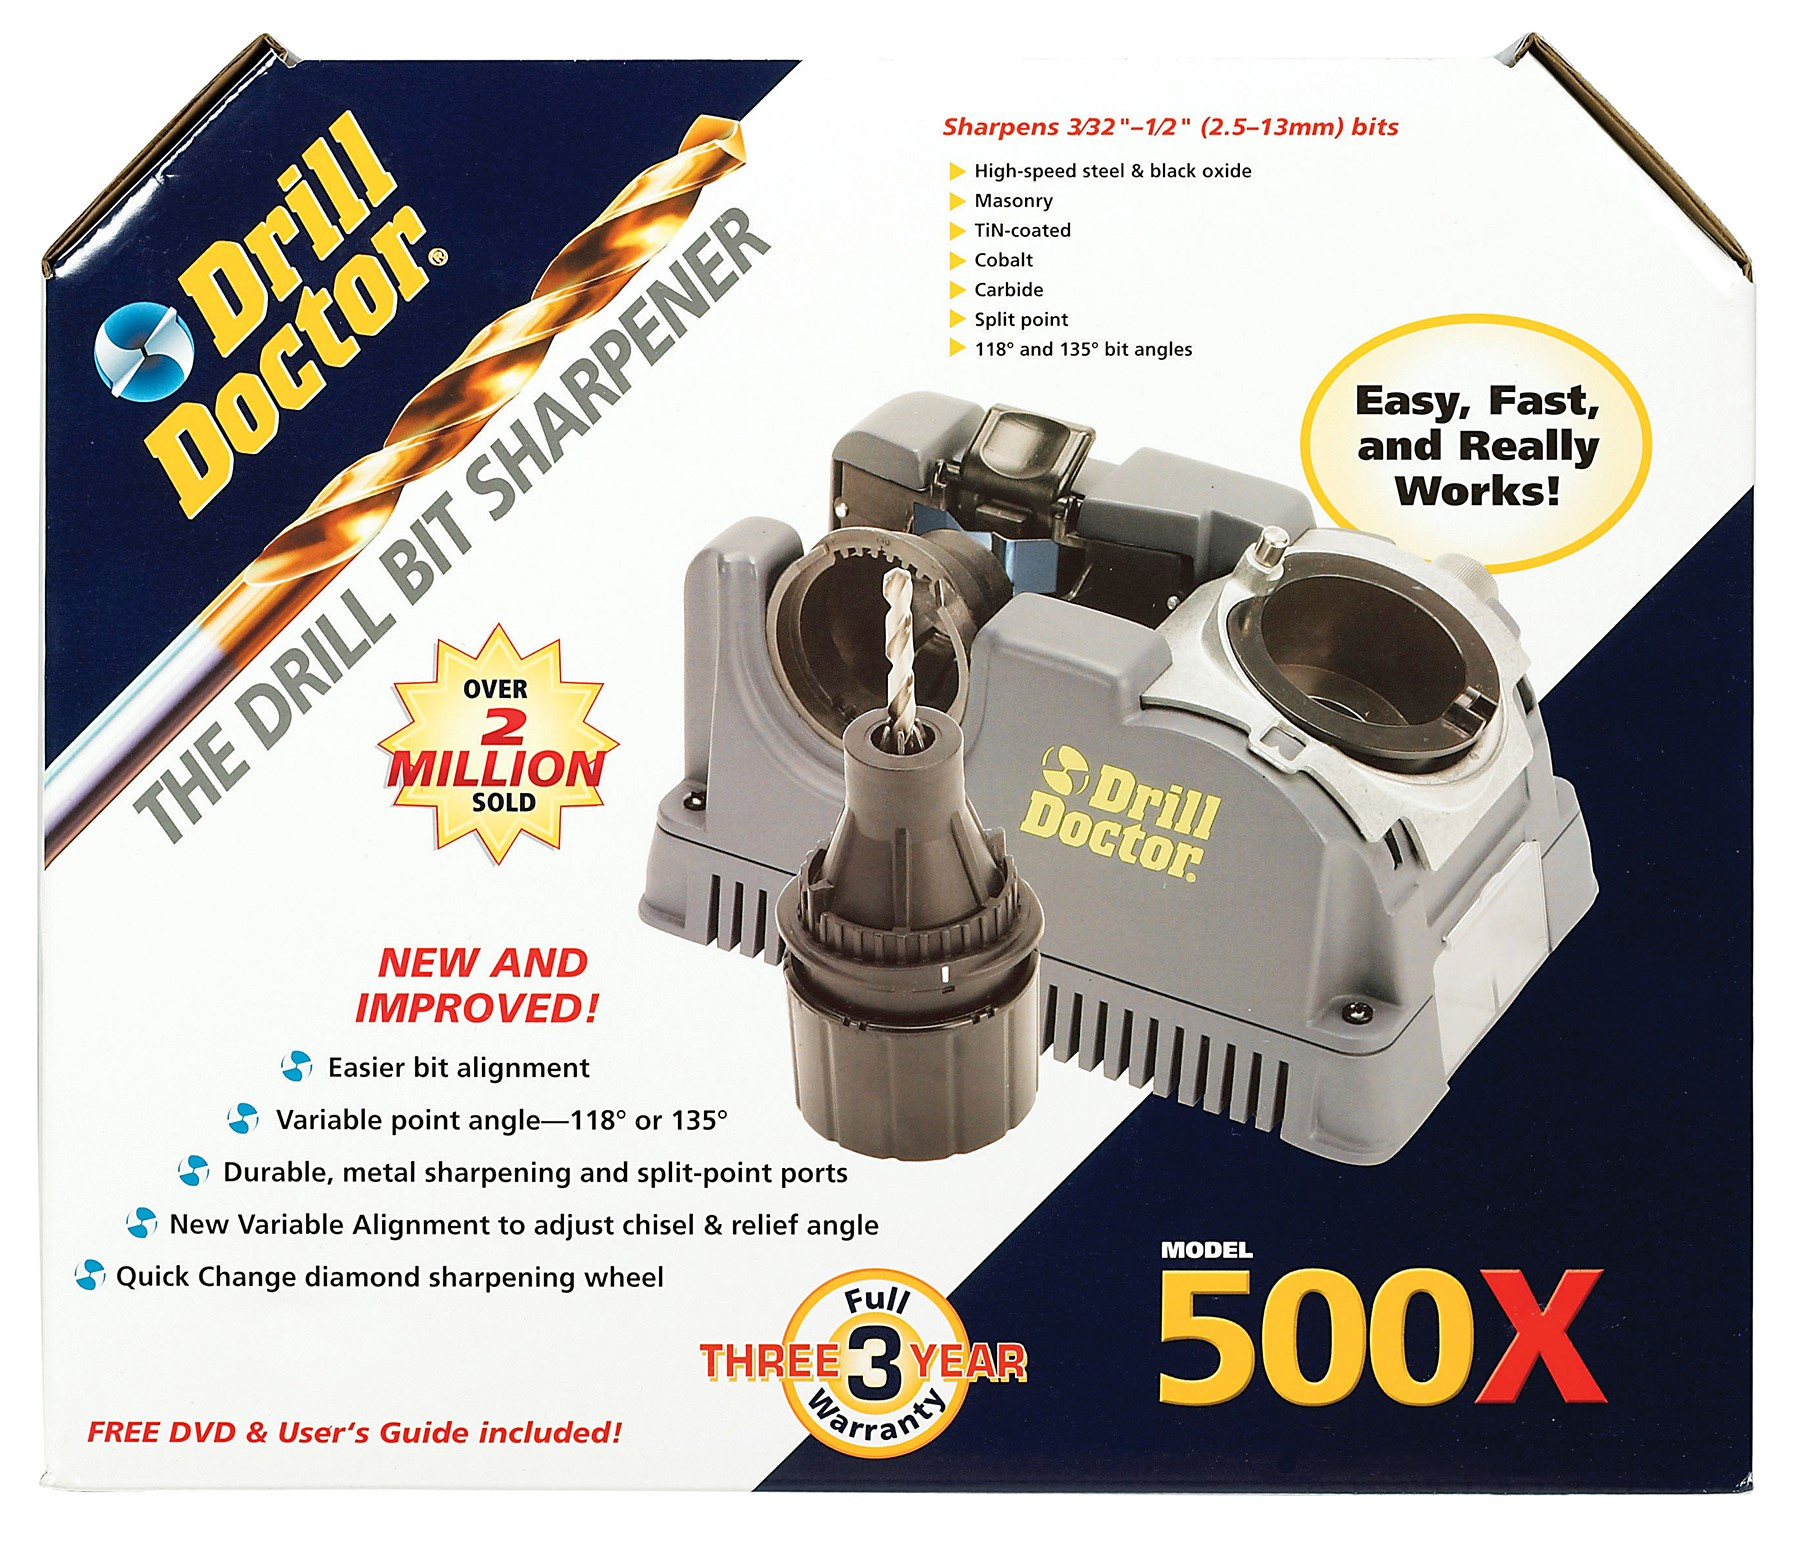 DAREX LLC DD500X 500X DrillBit Sharpener by DD500X